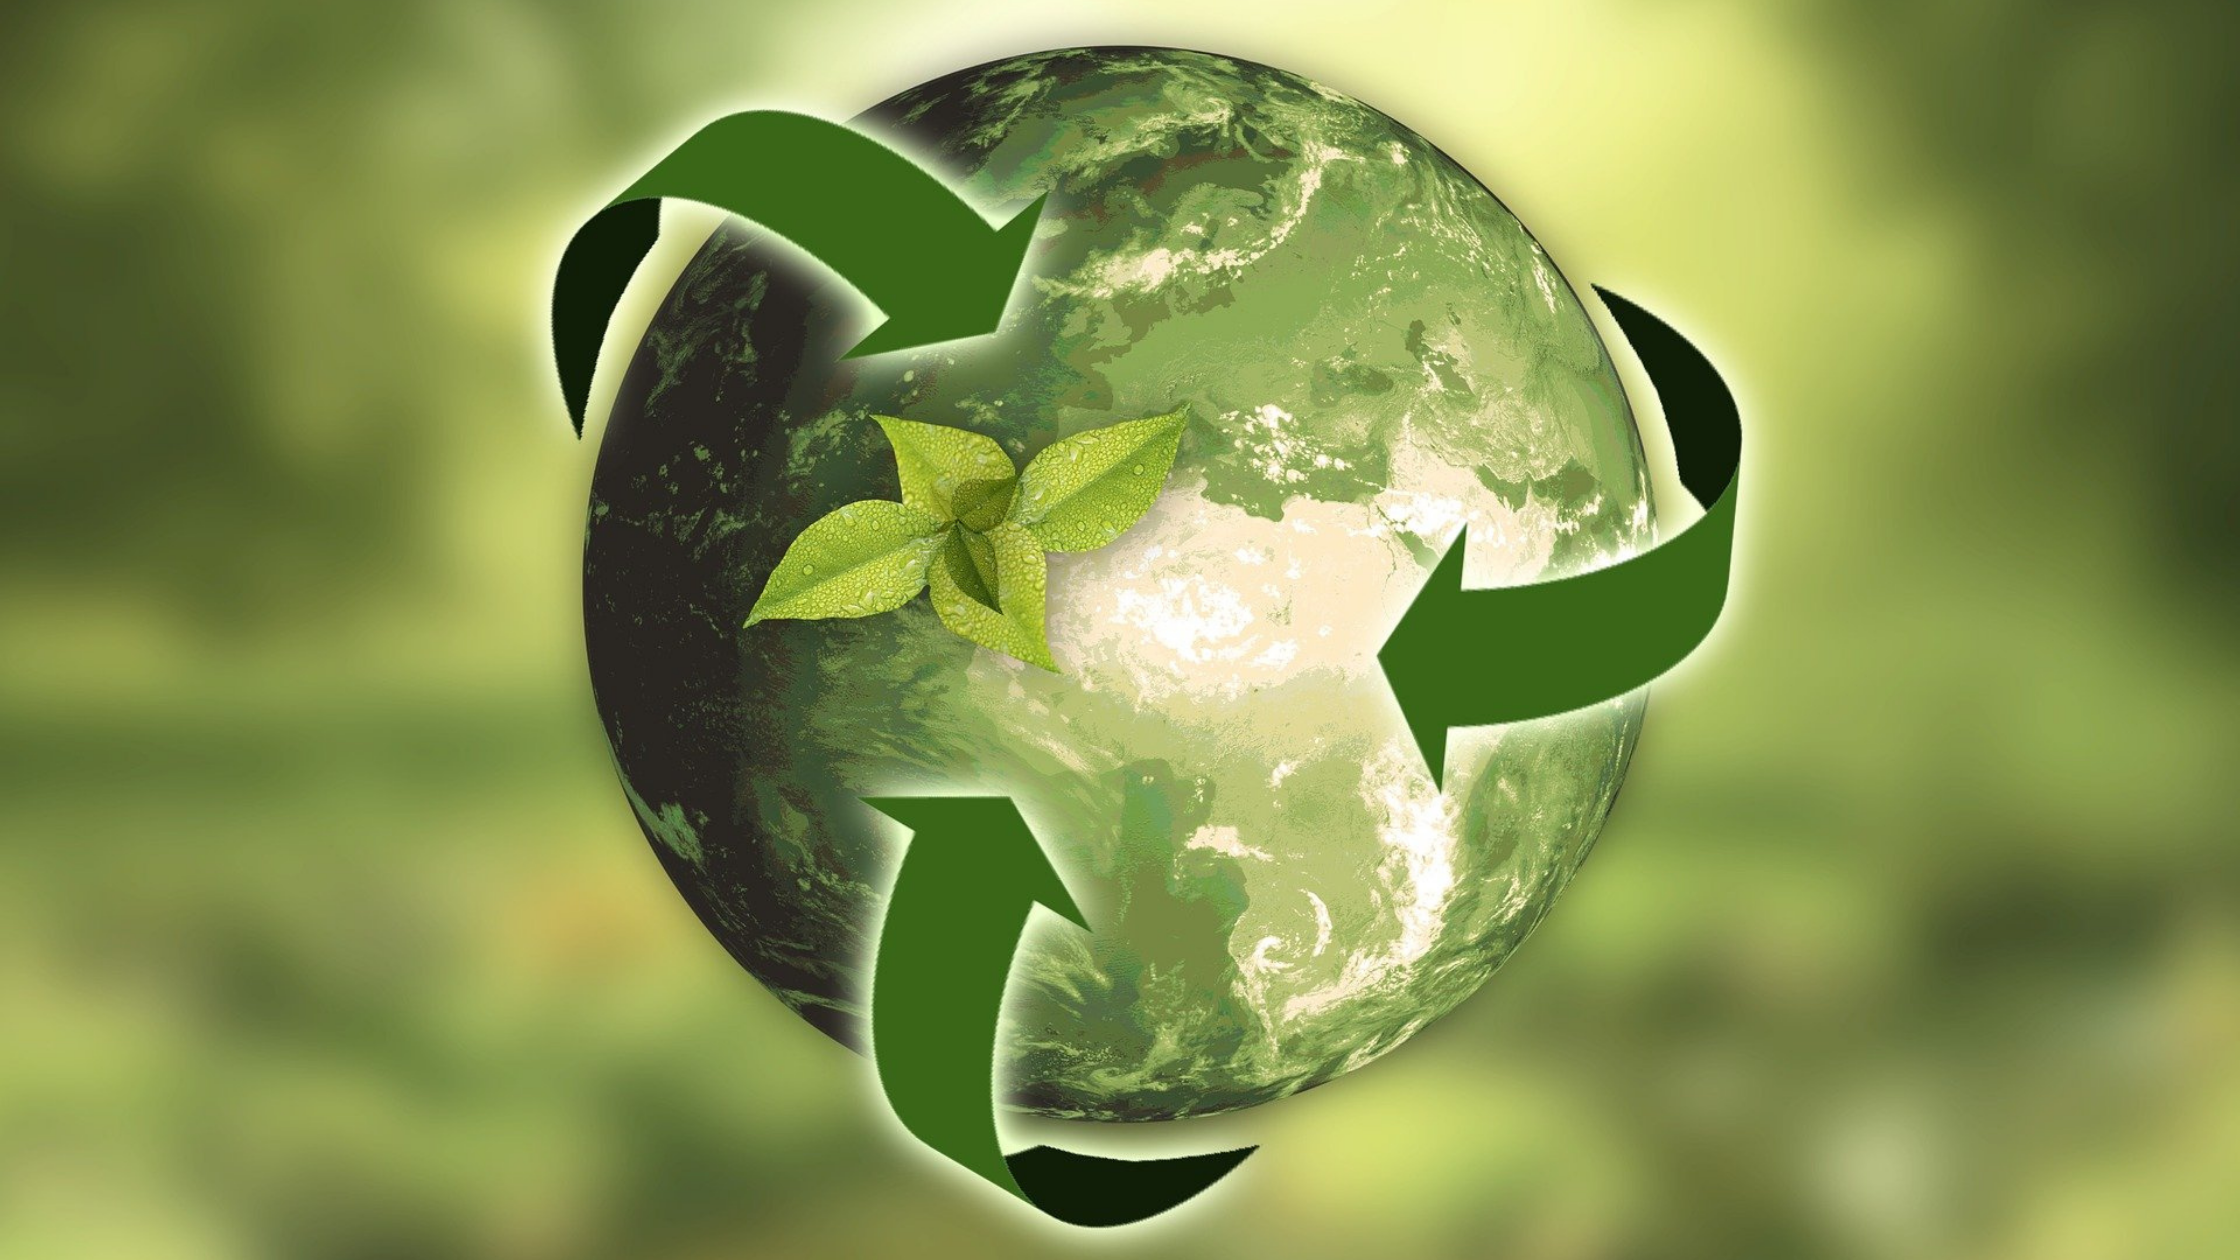 RJS Waste Management supports recycling to heal the earth